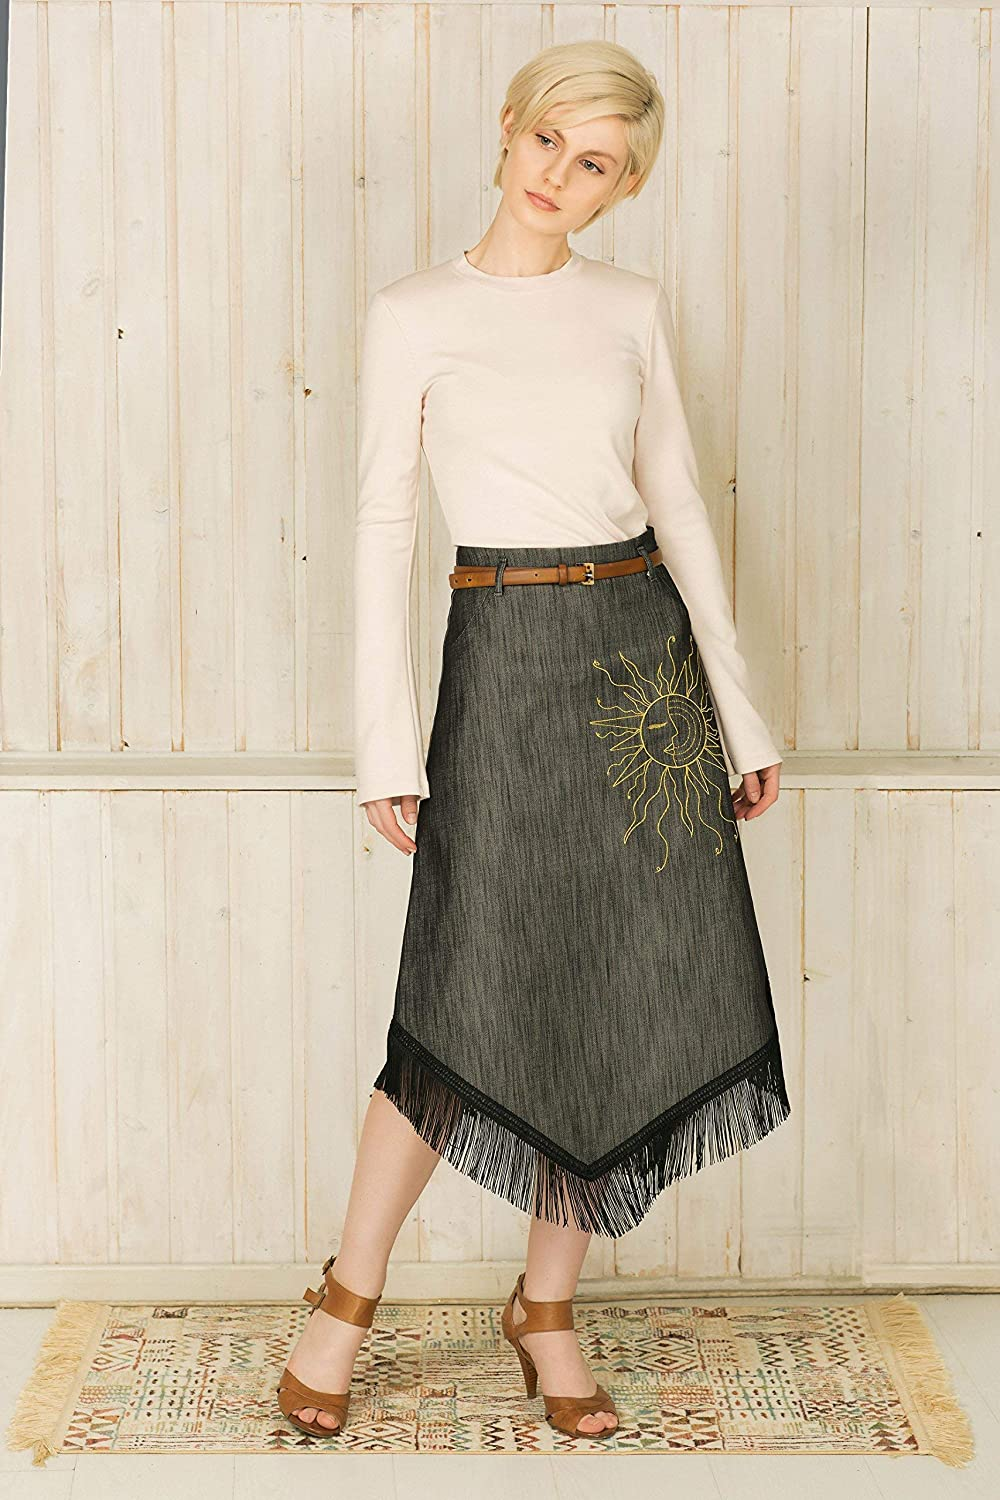 b834cc81759 A fringe-skirt is an ultimate style statement from your everyday look. Cut  from denim this high-waist midi skirt has tasseled fringing and an  asymmetric hem ...